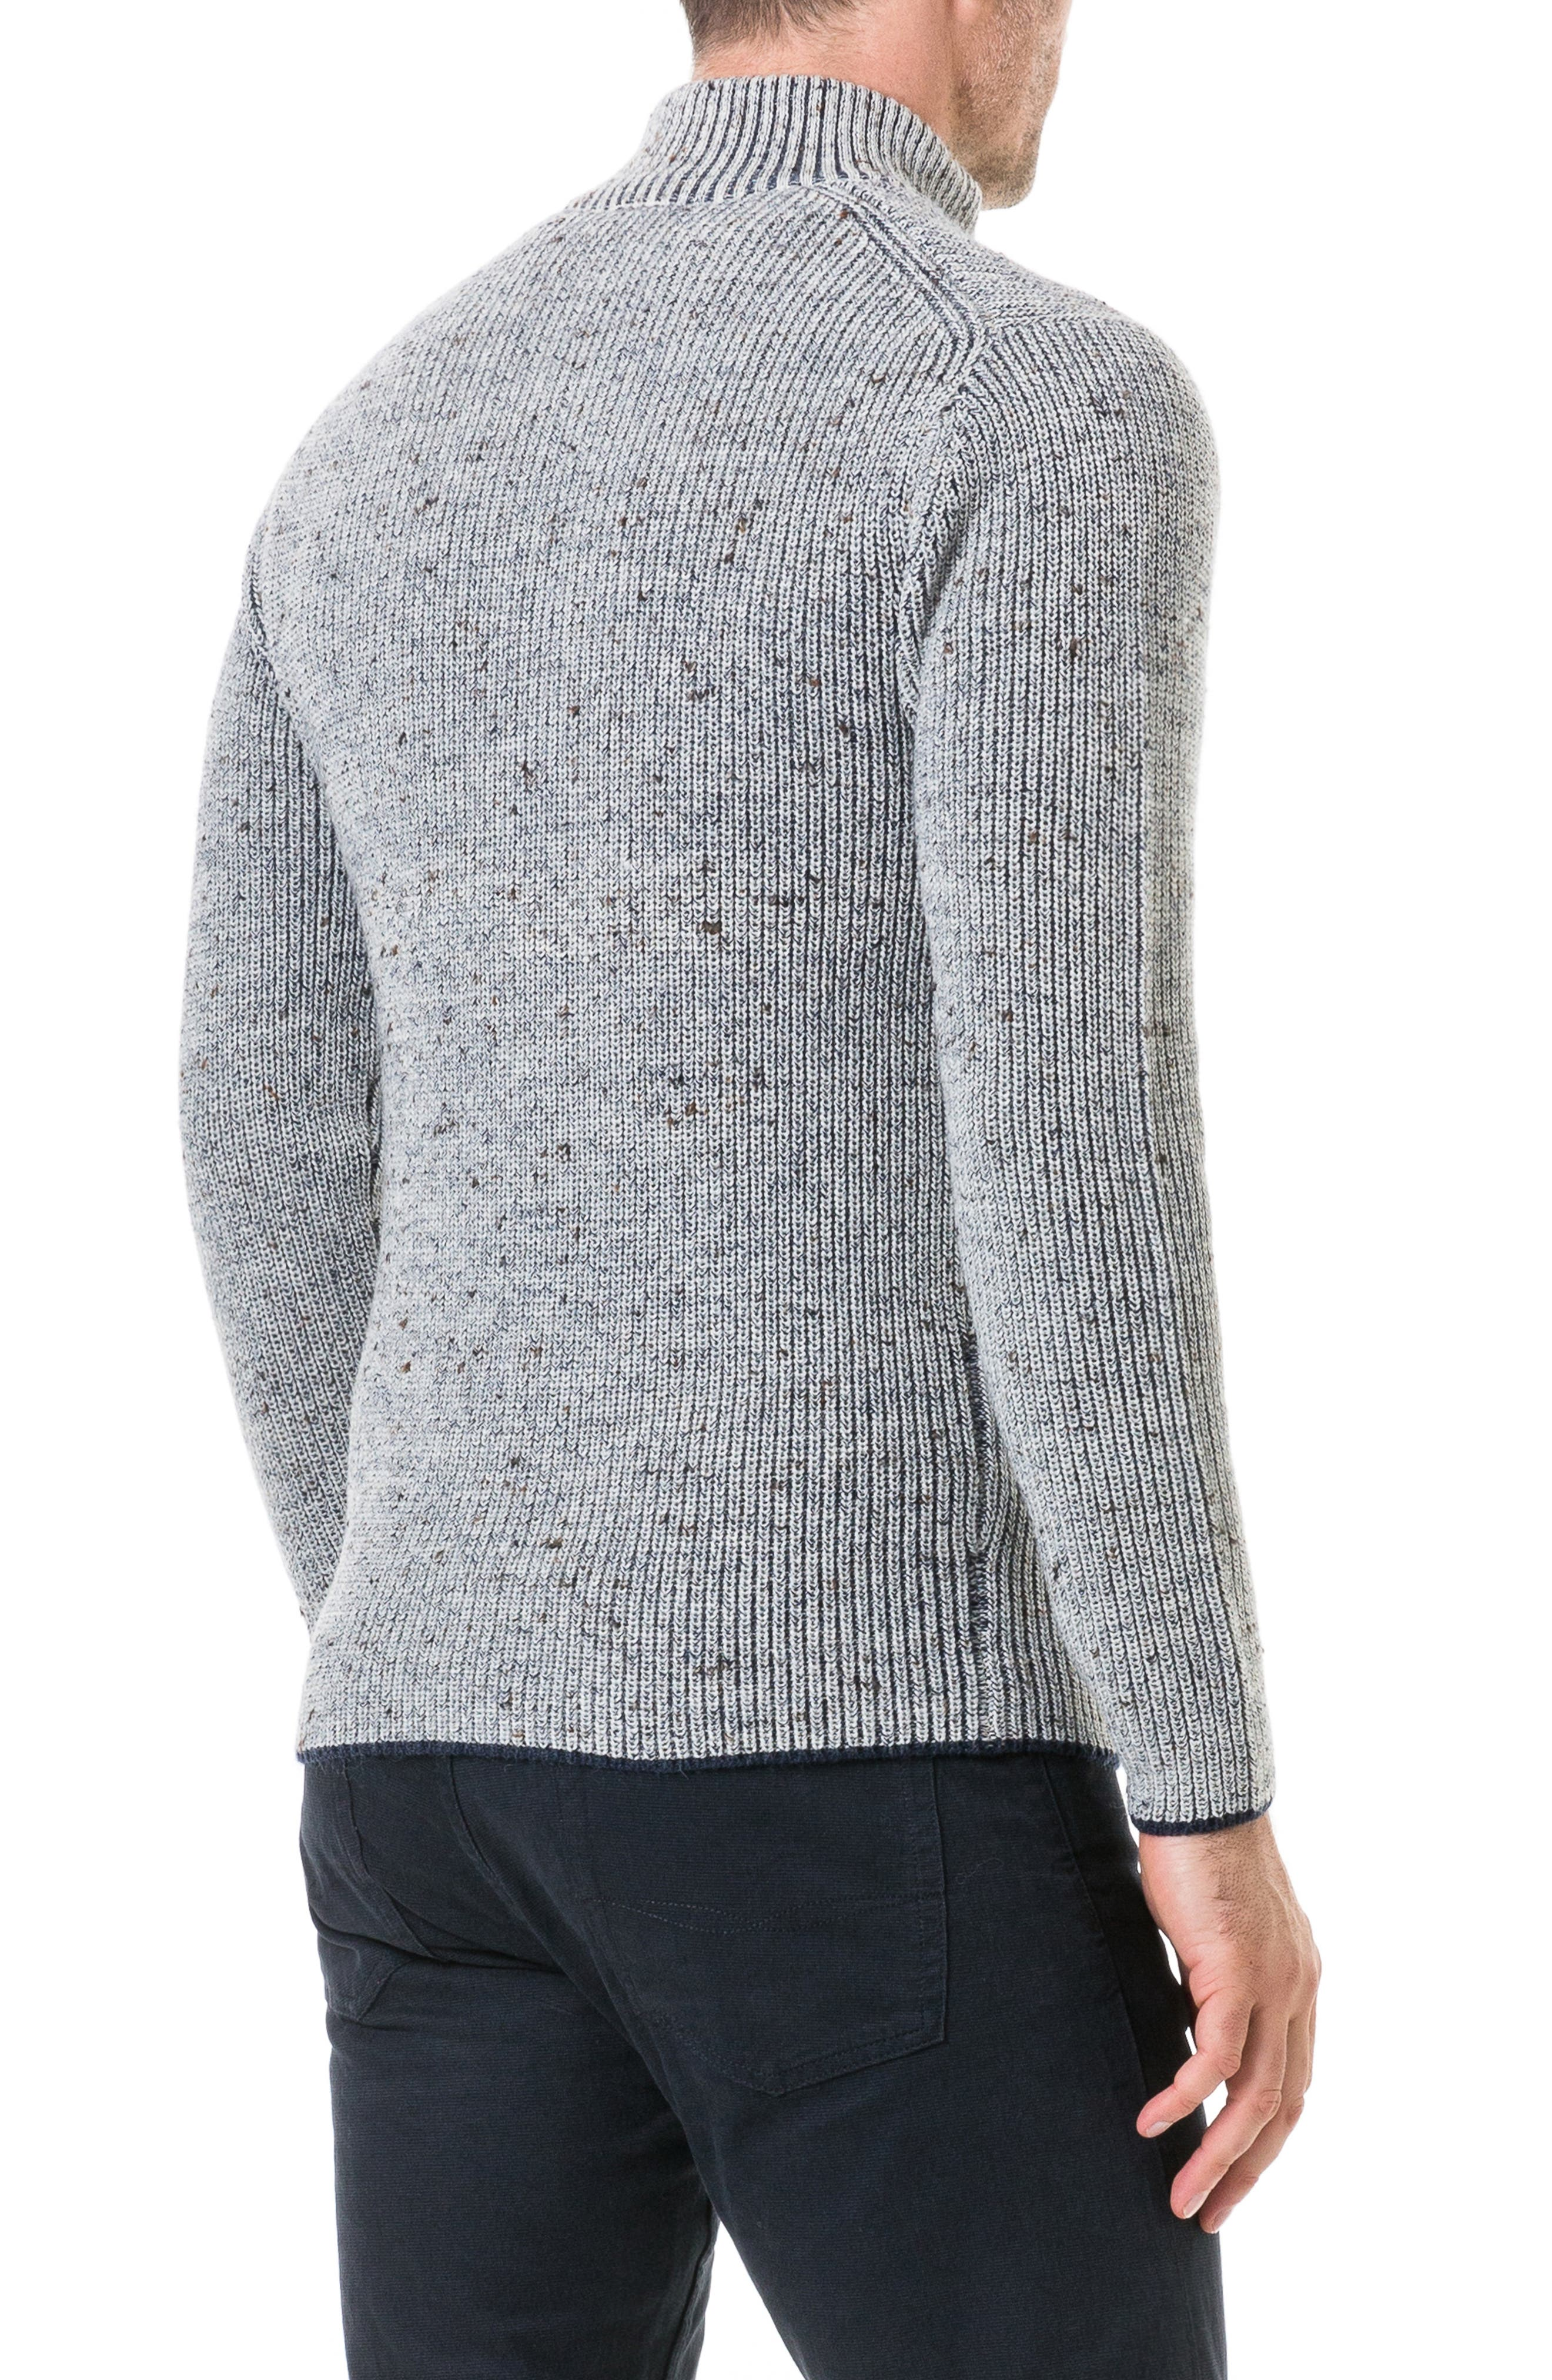 Slope Hill Wool Sweater,                             Alternate thumbnail 2, color,                             OATMEAL